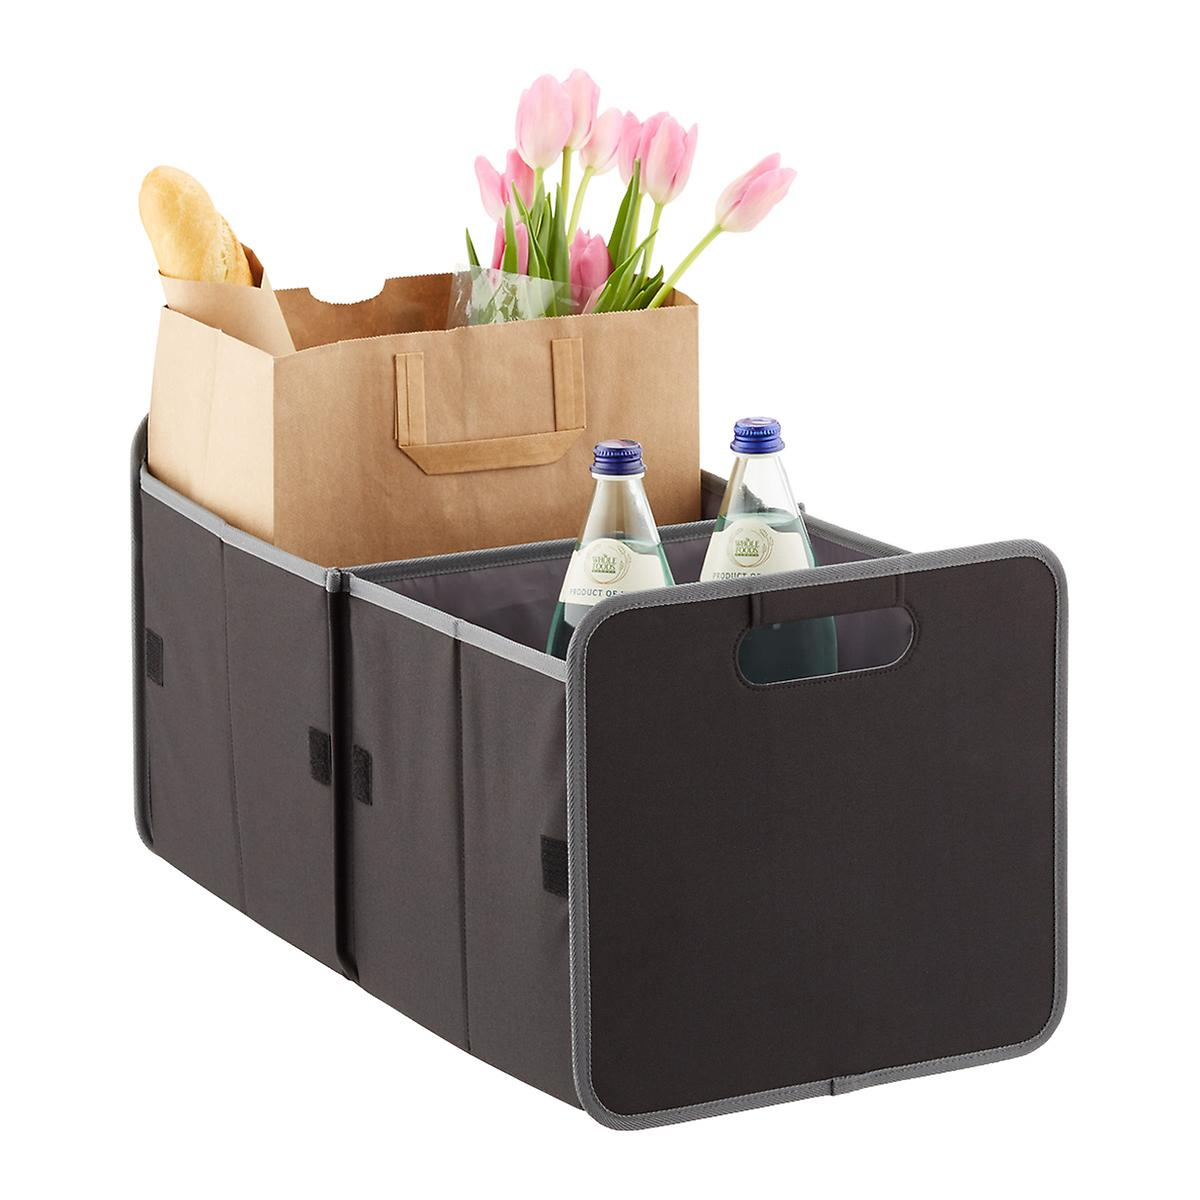 Meori Foldable Trunk Organizer